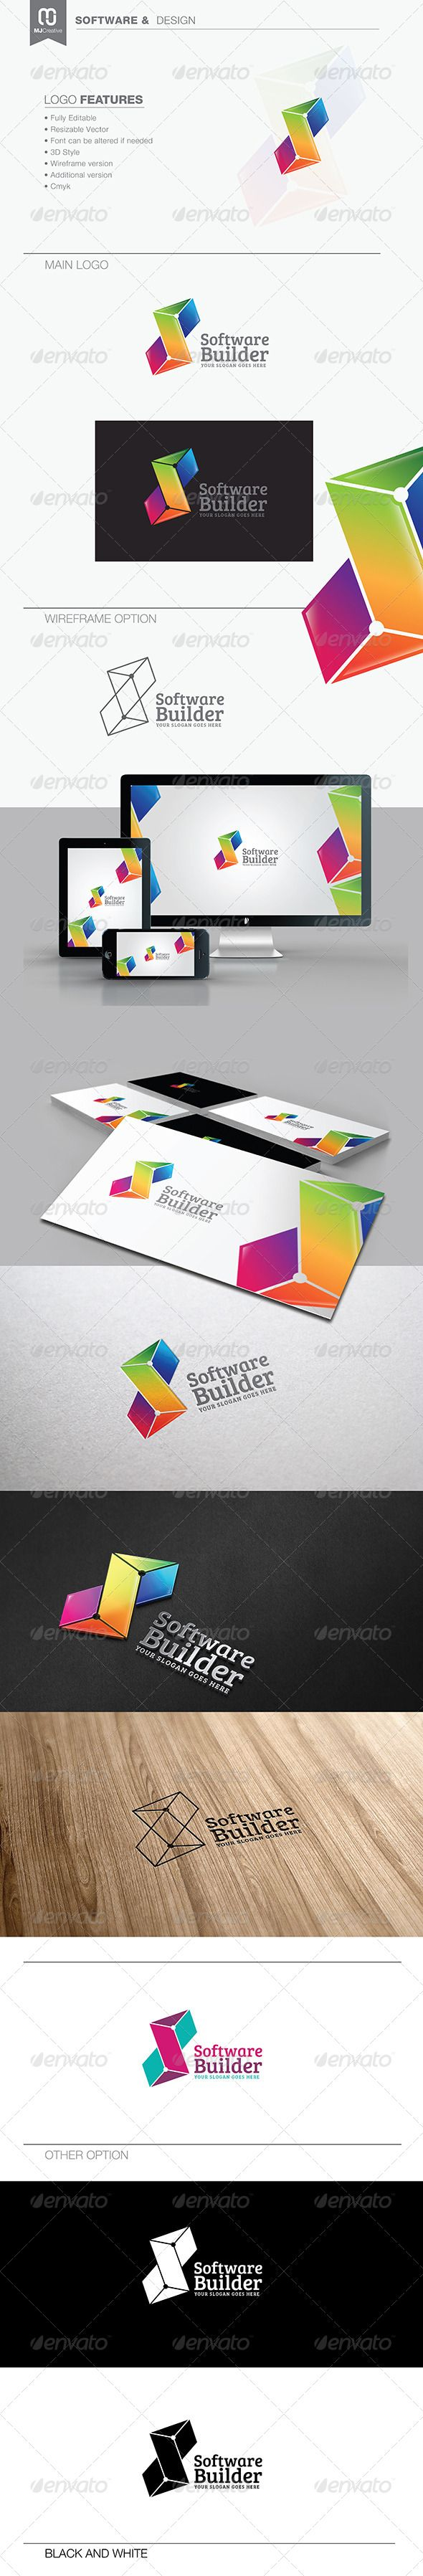 Letter+S+-+Software+&+Technology+Logo